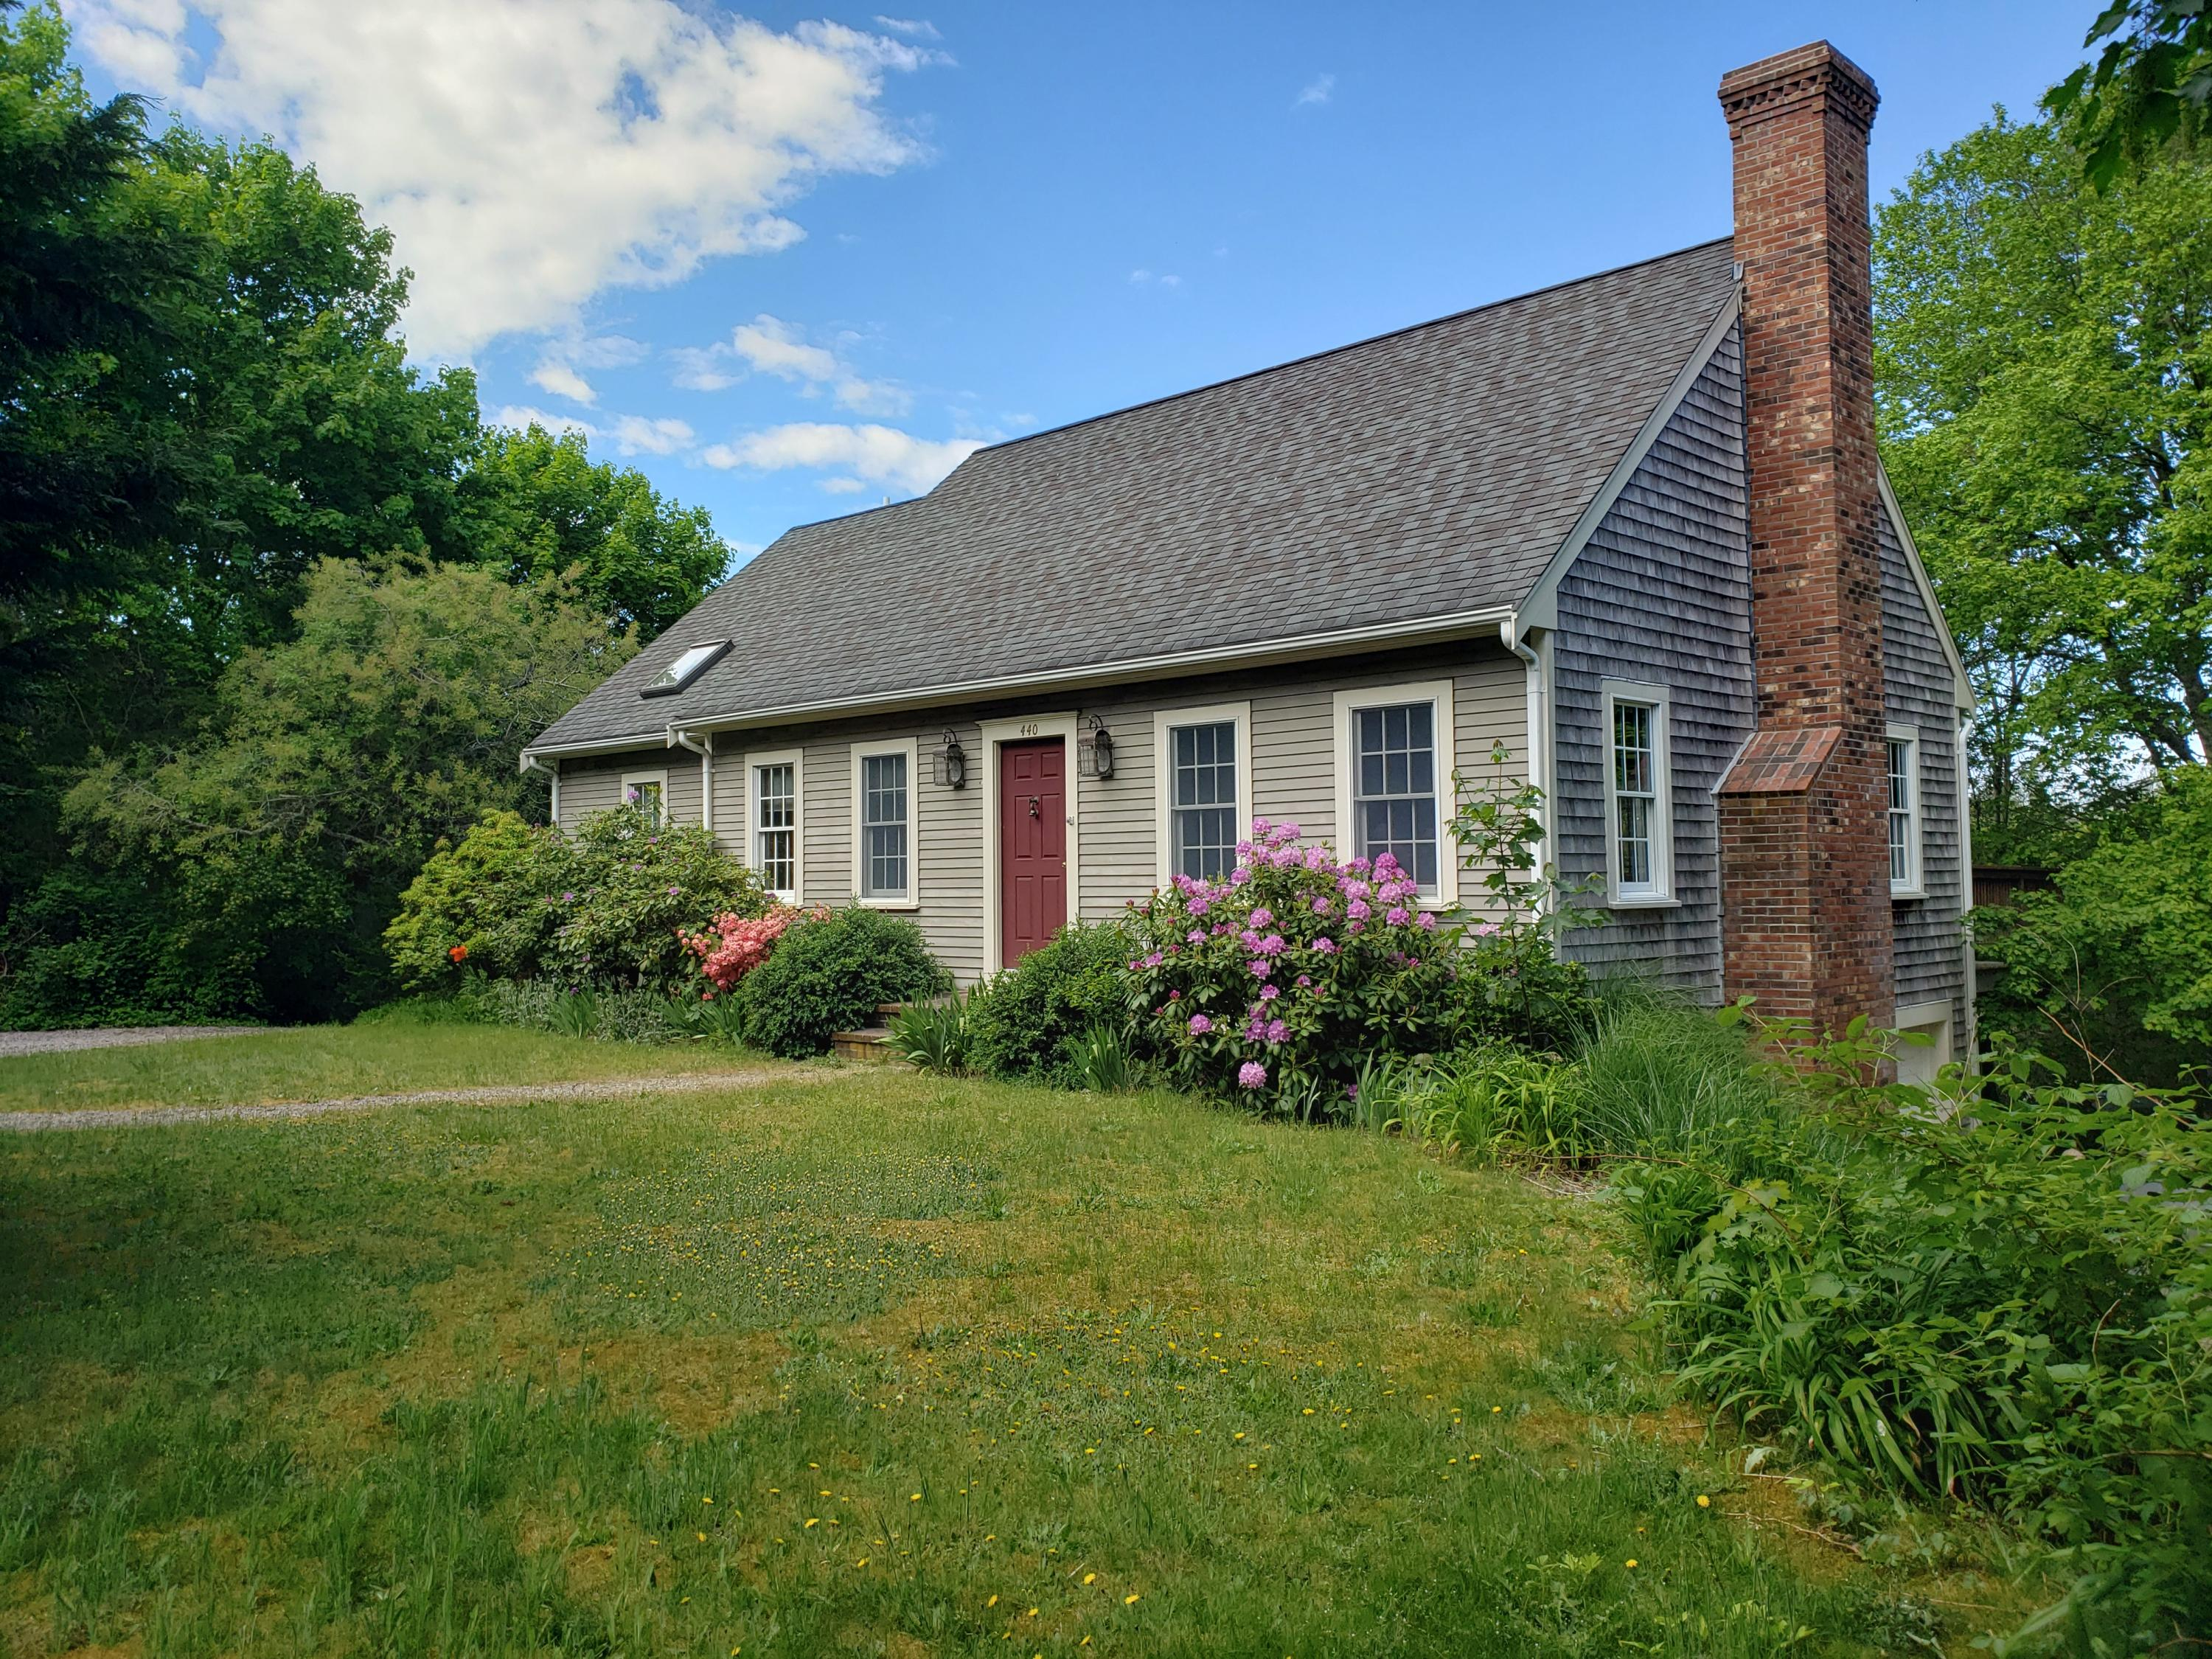 440 Mary Chase Road, Eastham MA, 02642 details